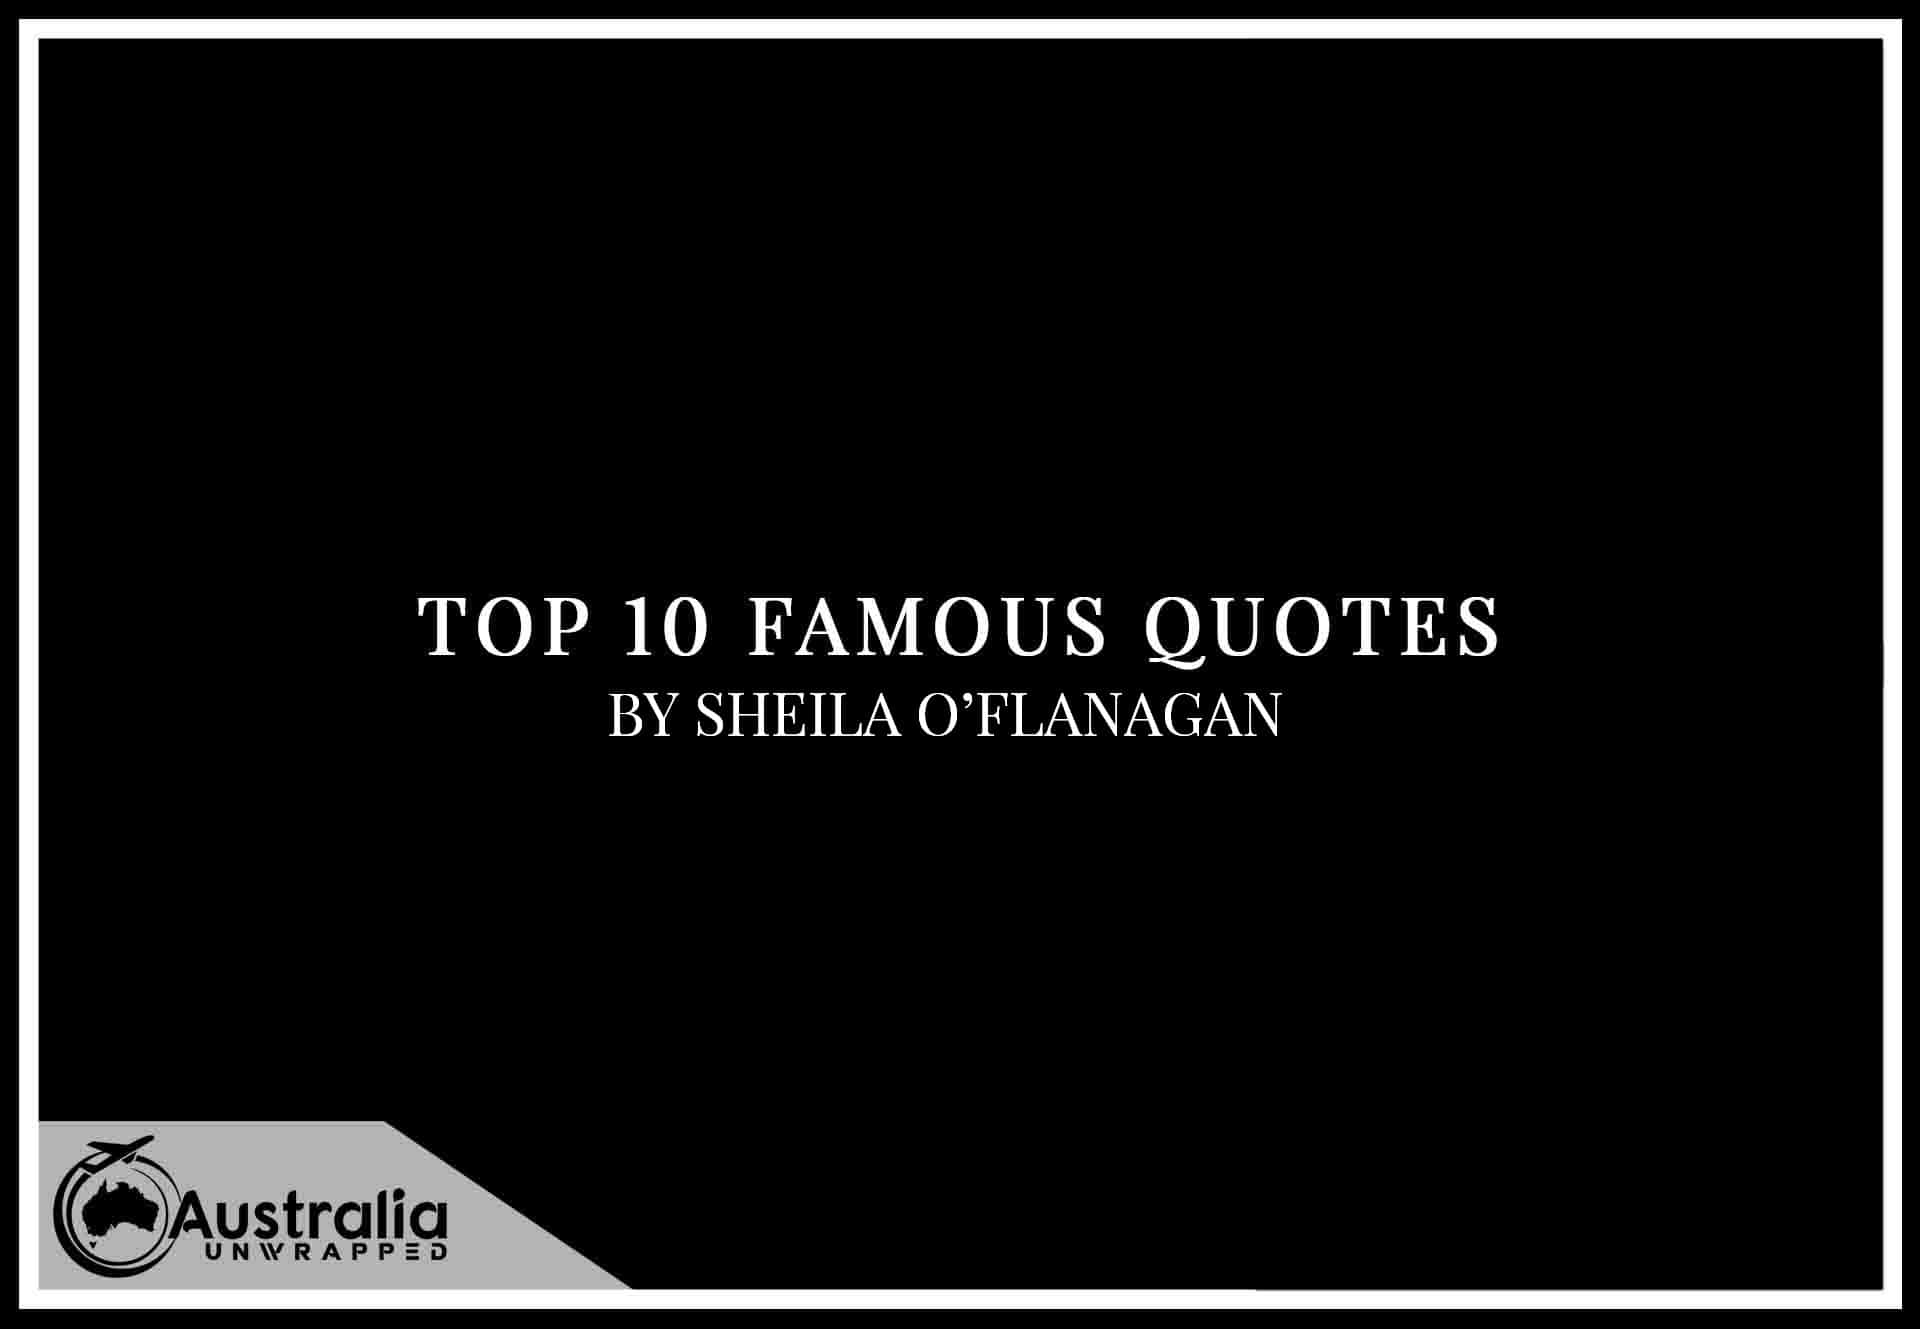 Top 10 Famous Quotes by Author Sheila O'Flanagan